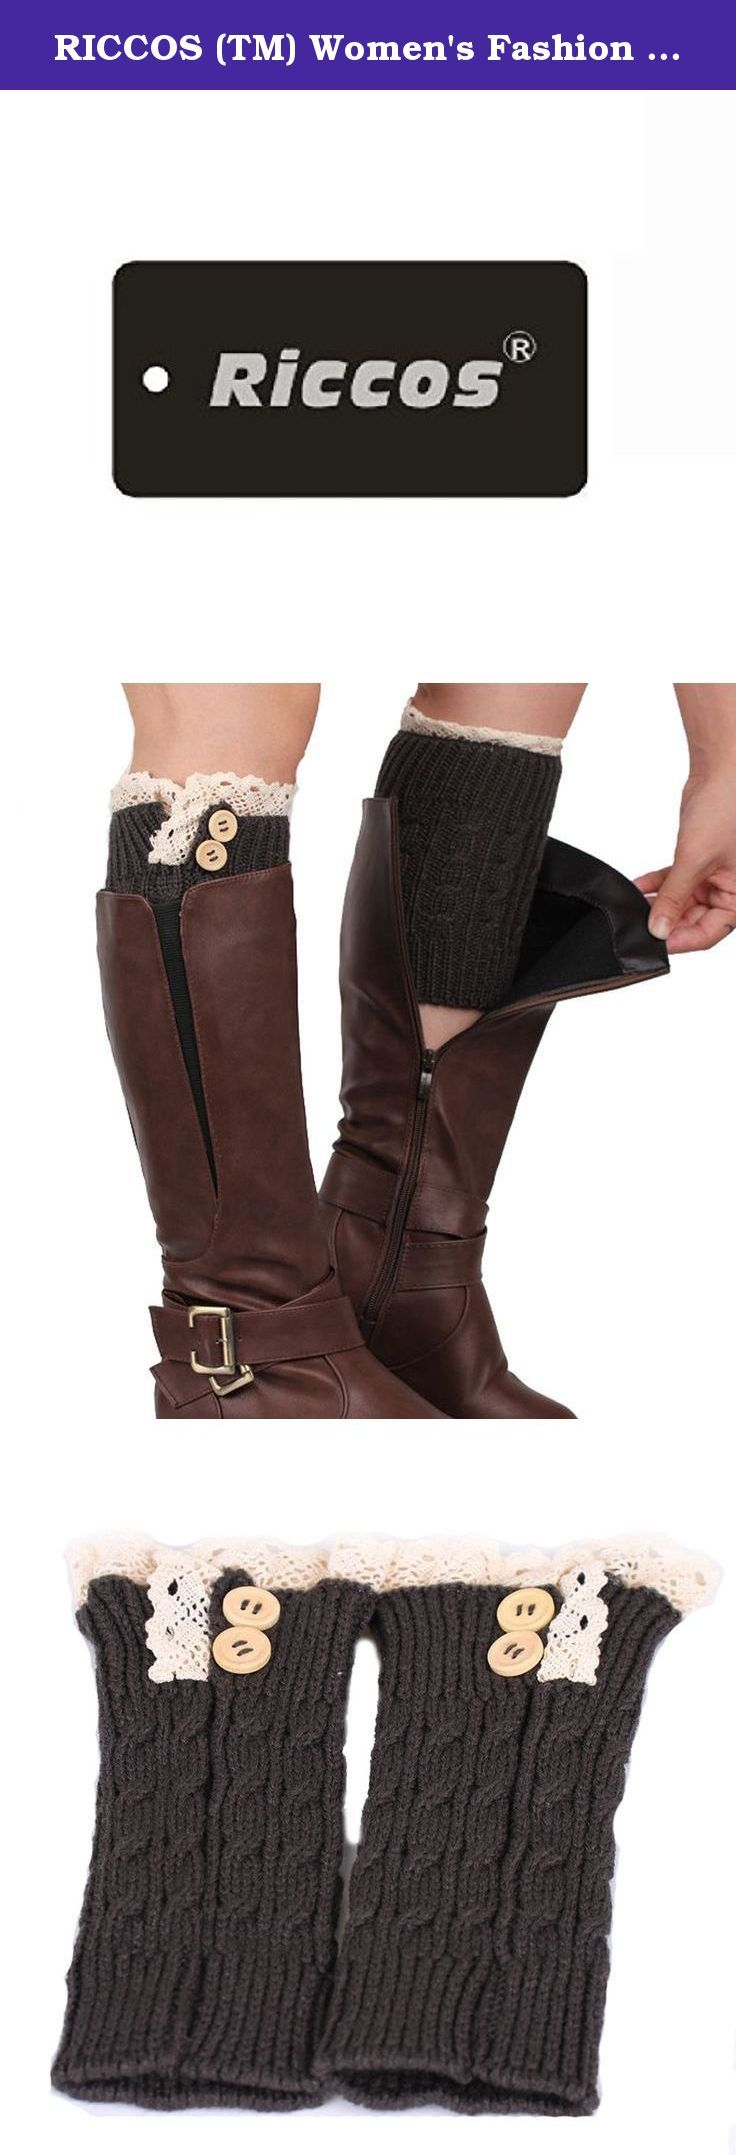 RICCOS (TM) Women's Fashion Winter Warm Knitted Short Buttons Boot Cuffs Leg Warmer Socks with Lace trim (Dark Grey). It is very warm and the design is keep up with the fashion. RICCOS knitted and Multi Colors leggings for a fun and fashionable effect.